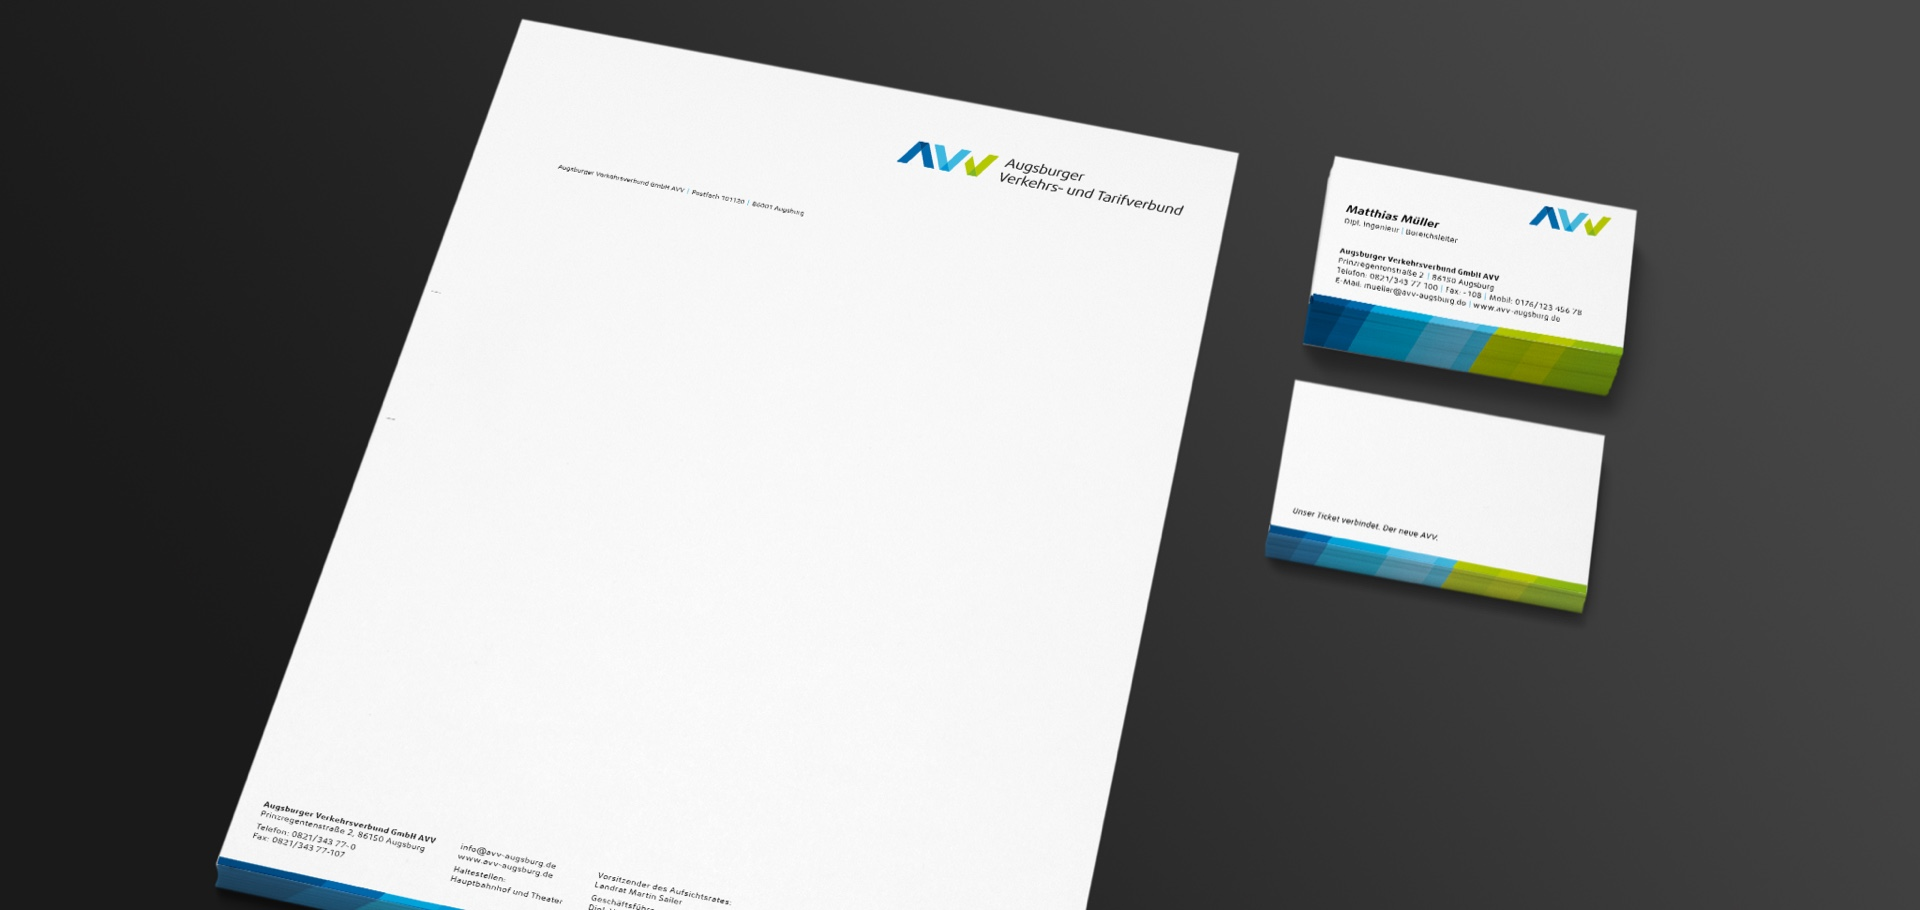 AVV Corporate Design 06